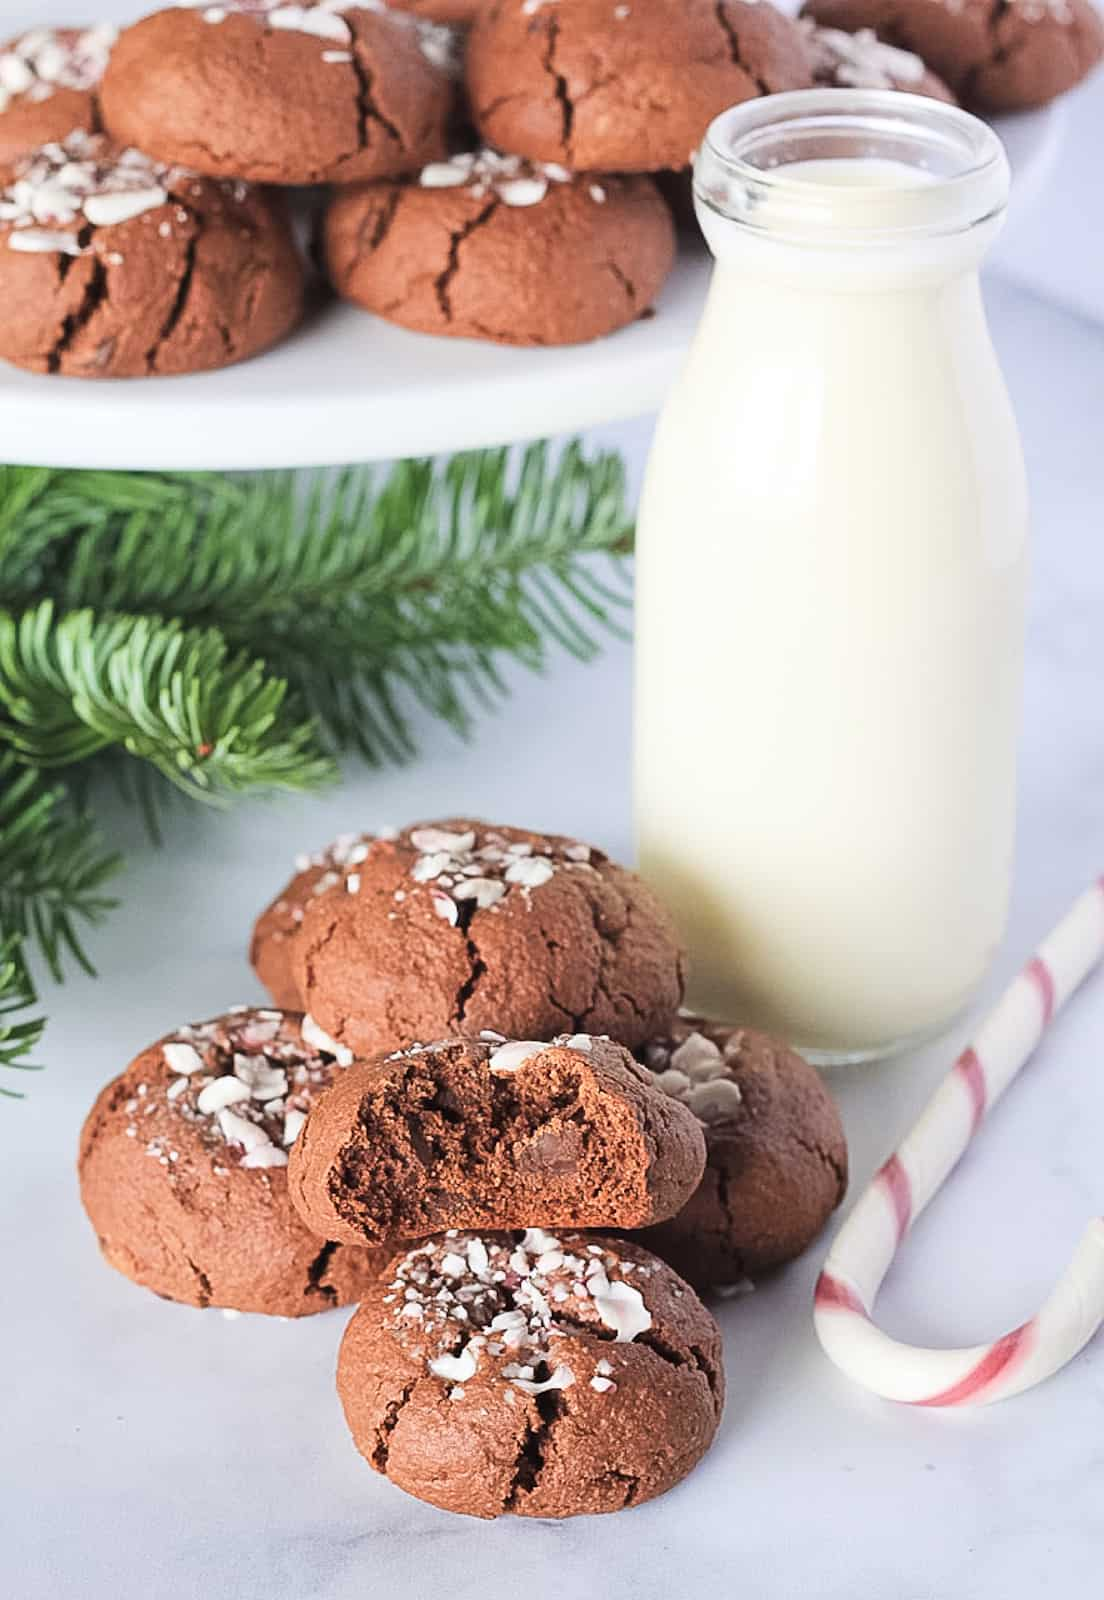 White plate and stack of double chocolate cookies with candy cane topping. Pine branch, glass of milk and bite out of cookie.